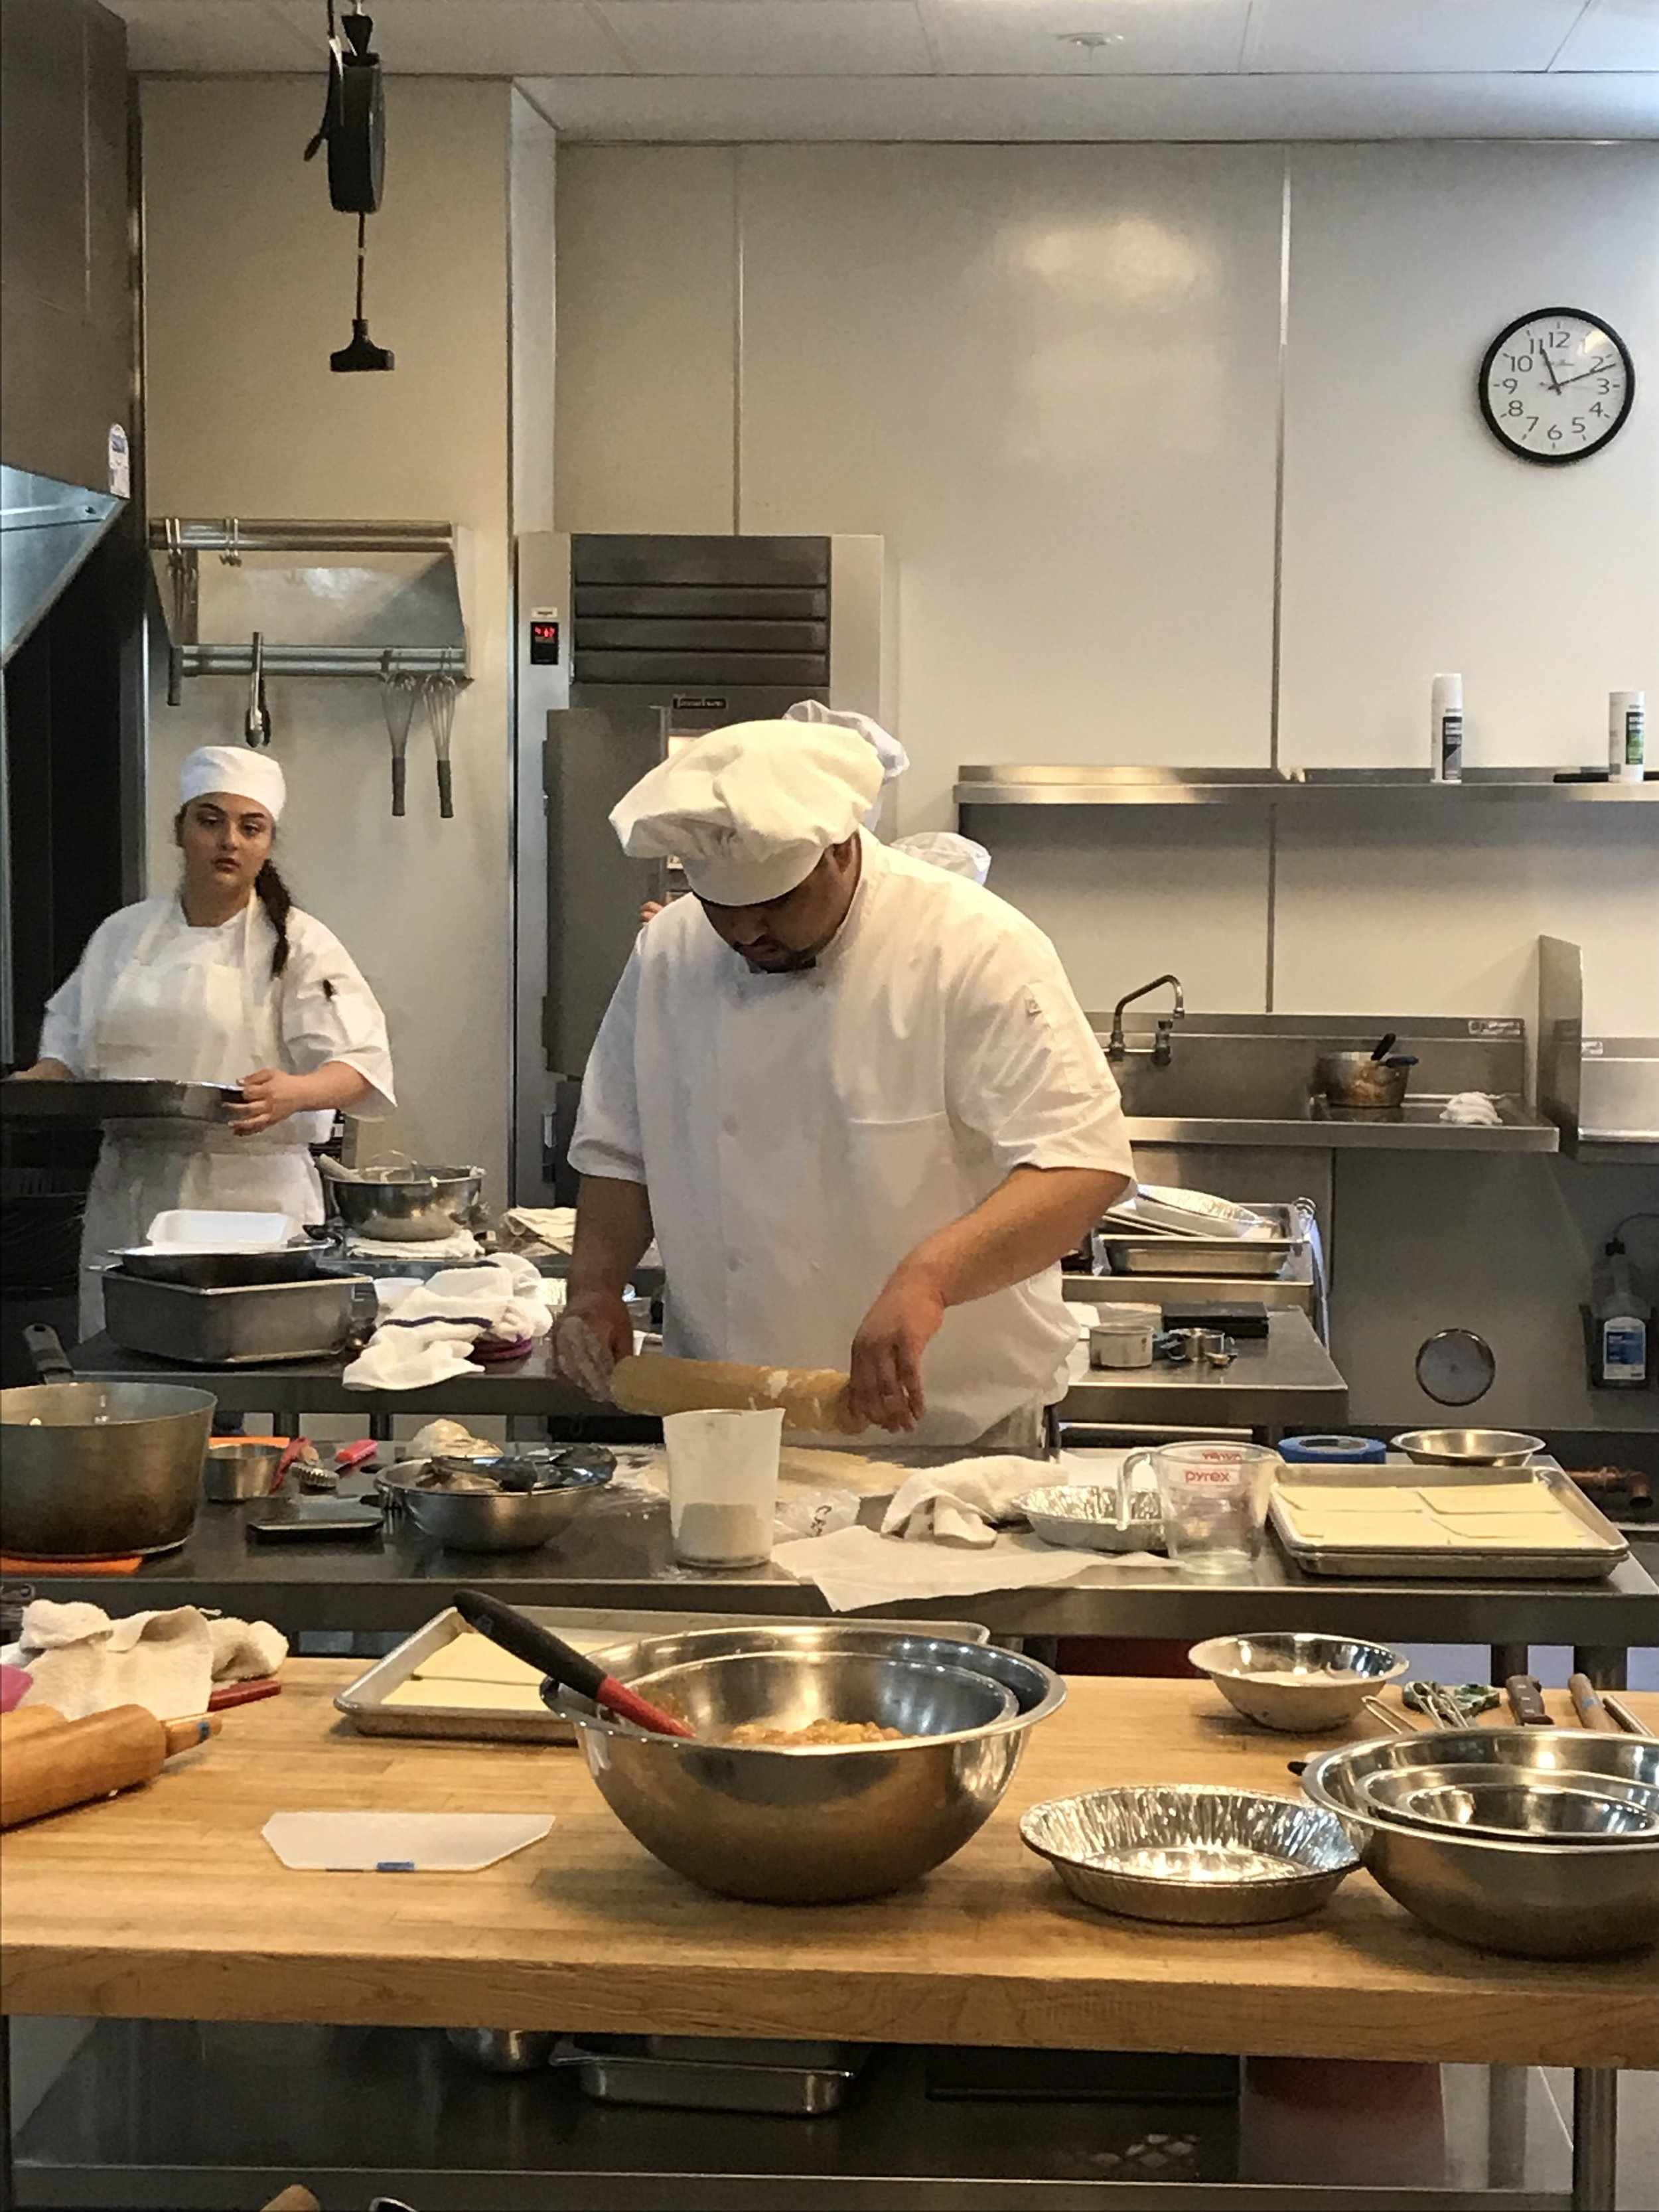 Working on his dough, Ebert digs deep and relies on the skills he practiced to complete his dishes. While the kitchen was hectic that day, Ebert managed to keep his cool to finish and finish well.